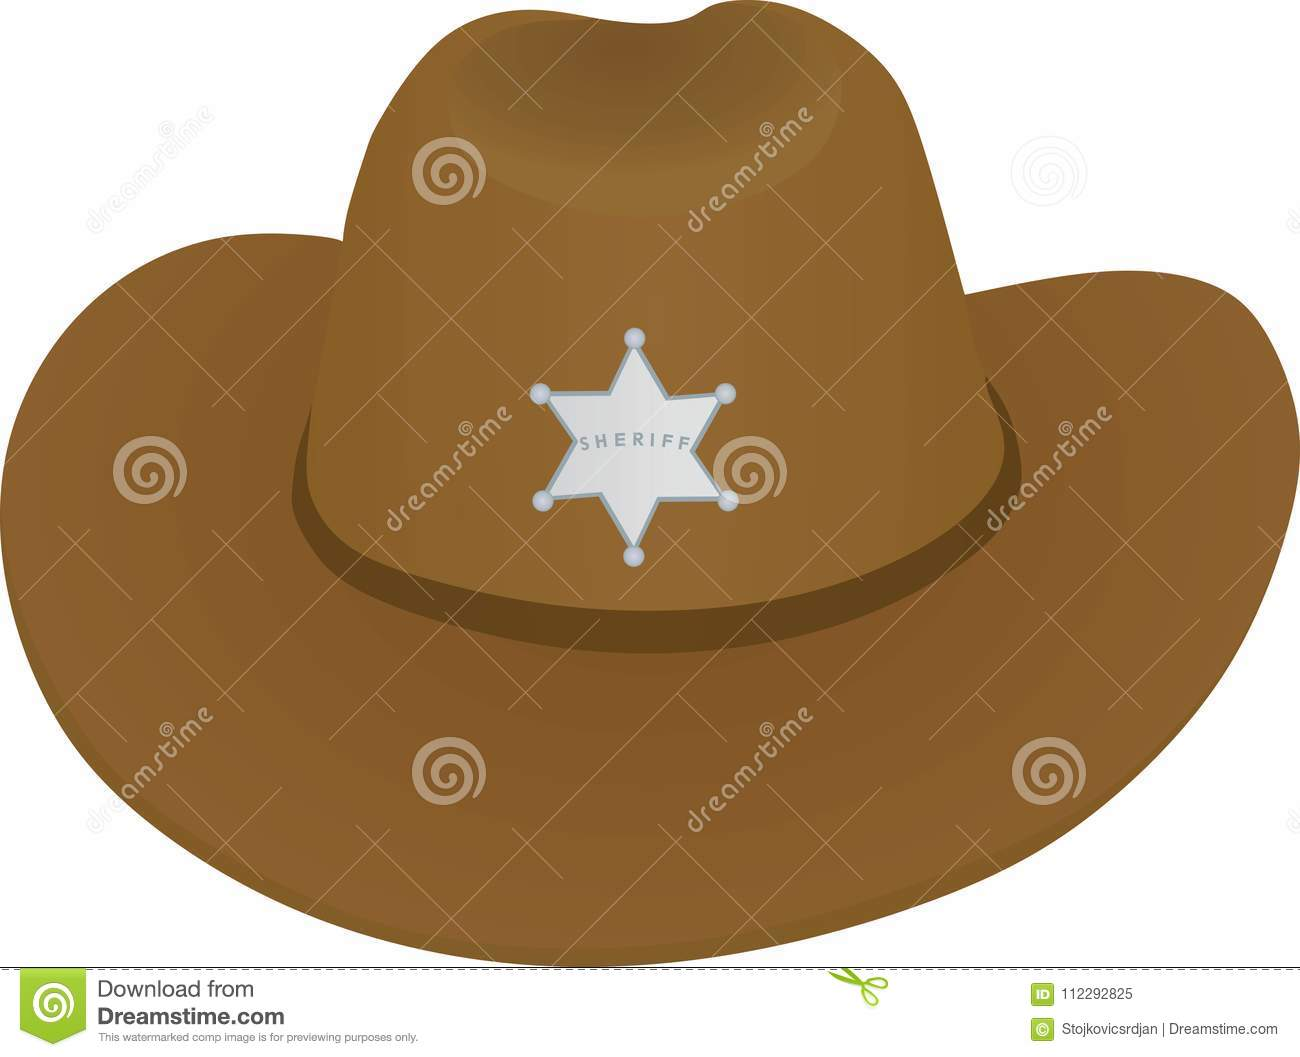 0256a2c2e Sheriff hat, front view stock vector. Illustration of rural - 112292825